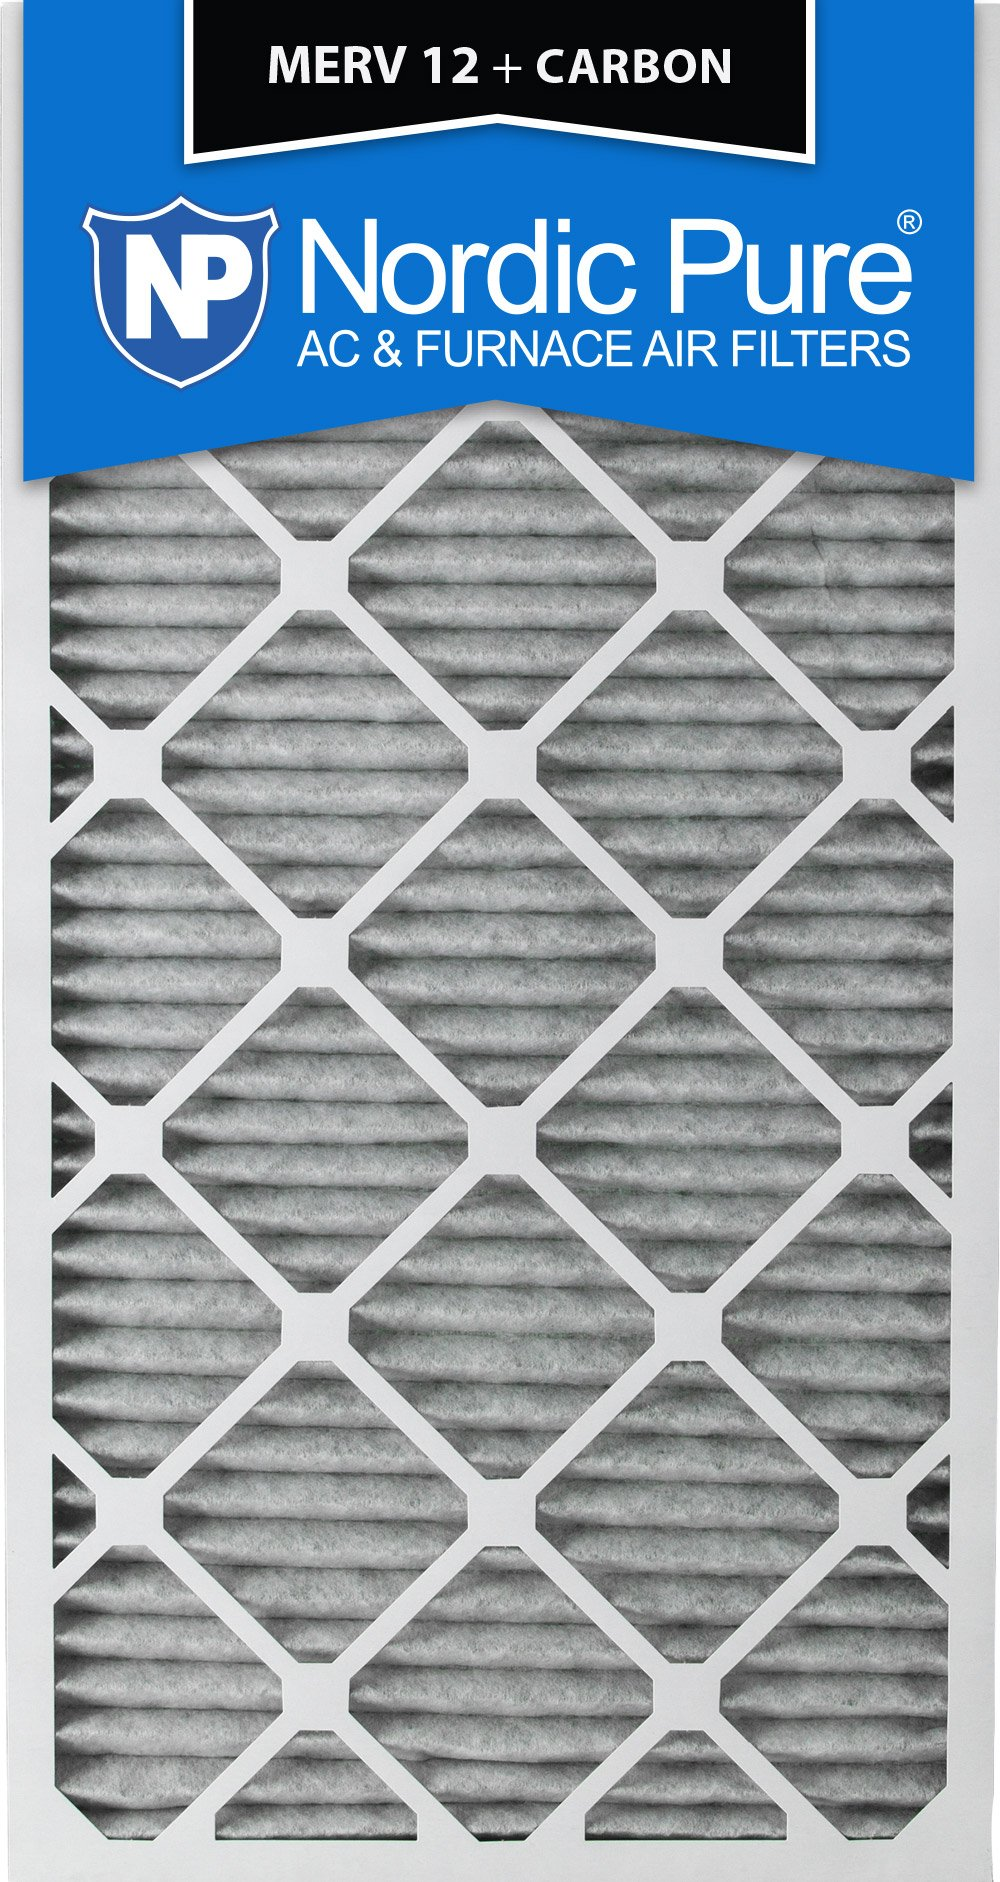 Nordic Pure 24x30x1PM12C-3 Pleated MERV 12 Plus Carbon AC Furnace Filters (3 Pack), 24 x 30 x 1''